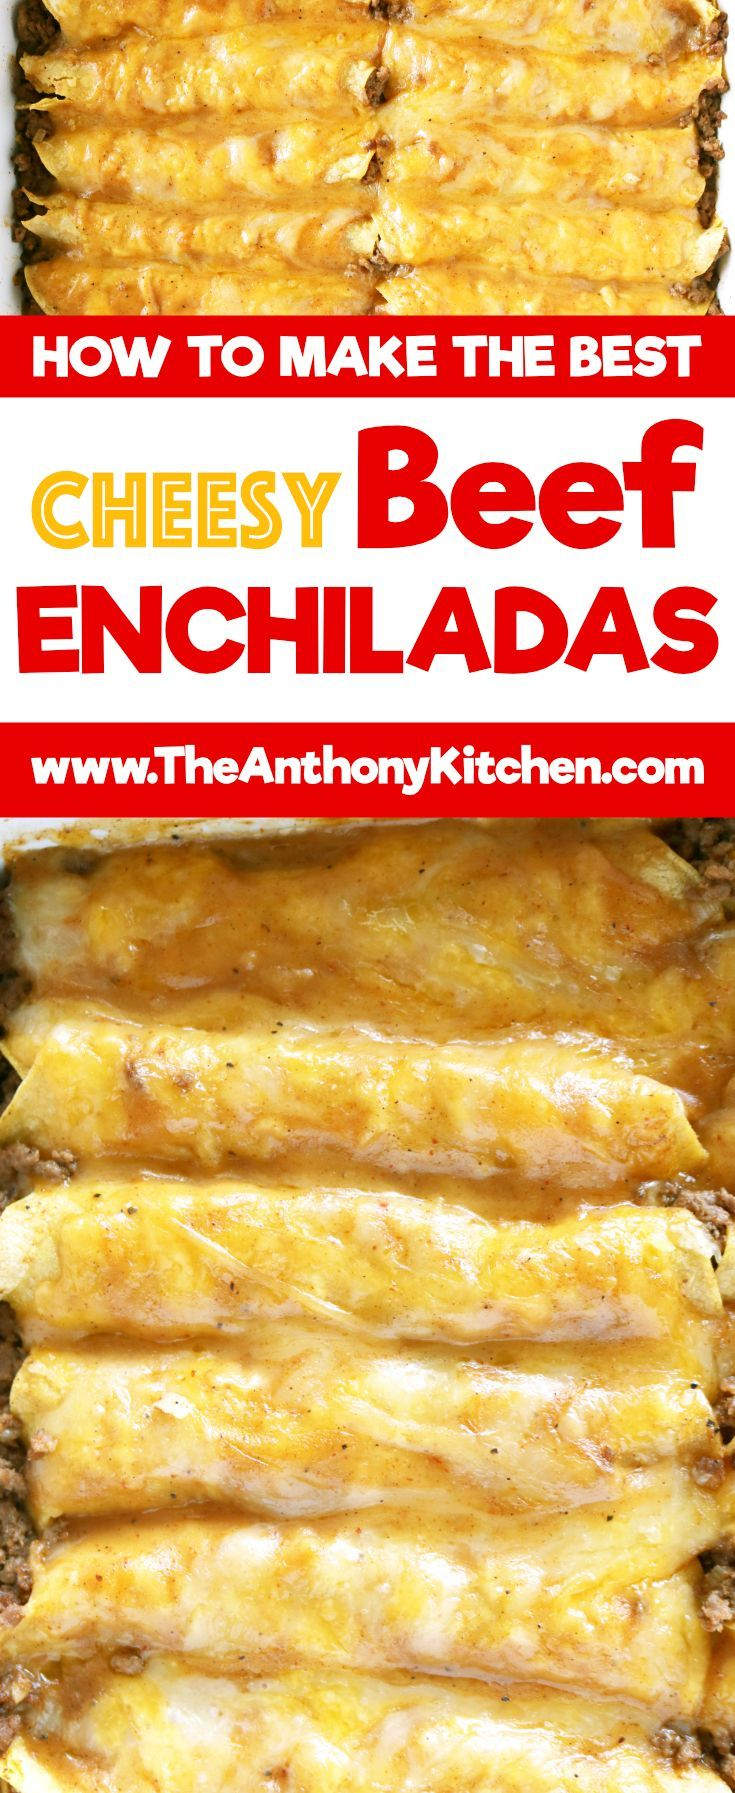 Best Beef Enchilada Recipe | The only recipe you'll ever need for authentic Tex-Mex beef enchiladas. Featuring ground beef enchiladas, a homemade beef gravy, and a freshly grated cheese blend | #kidfriendlydinner #enchiladarecipe #cheesyenchiladas